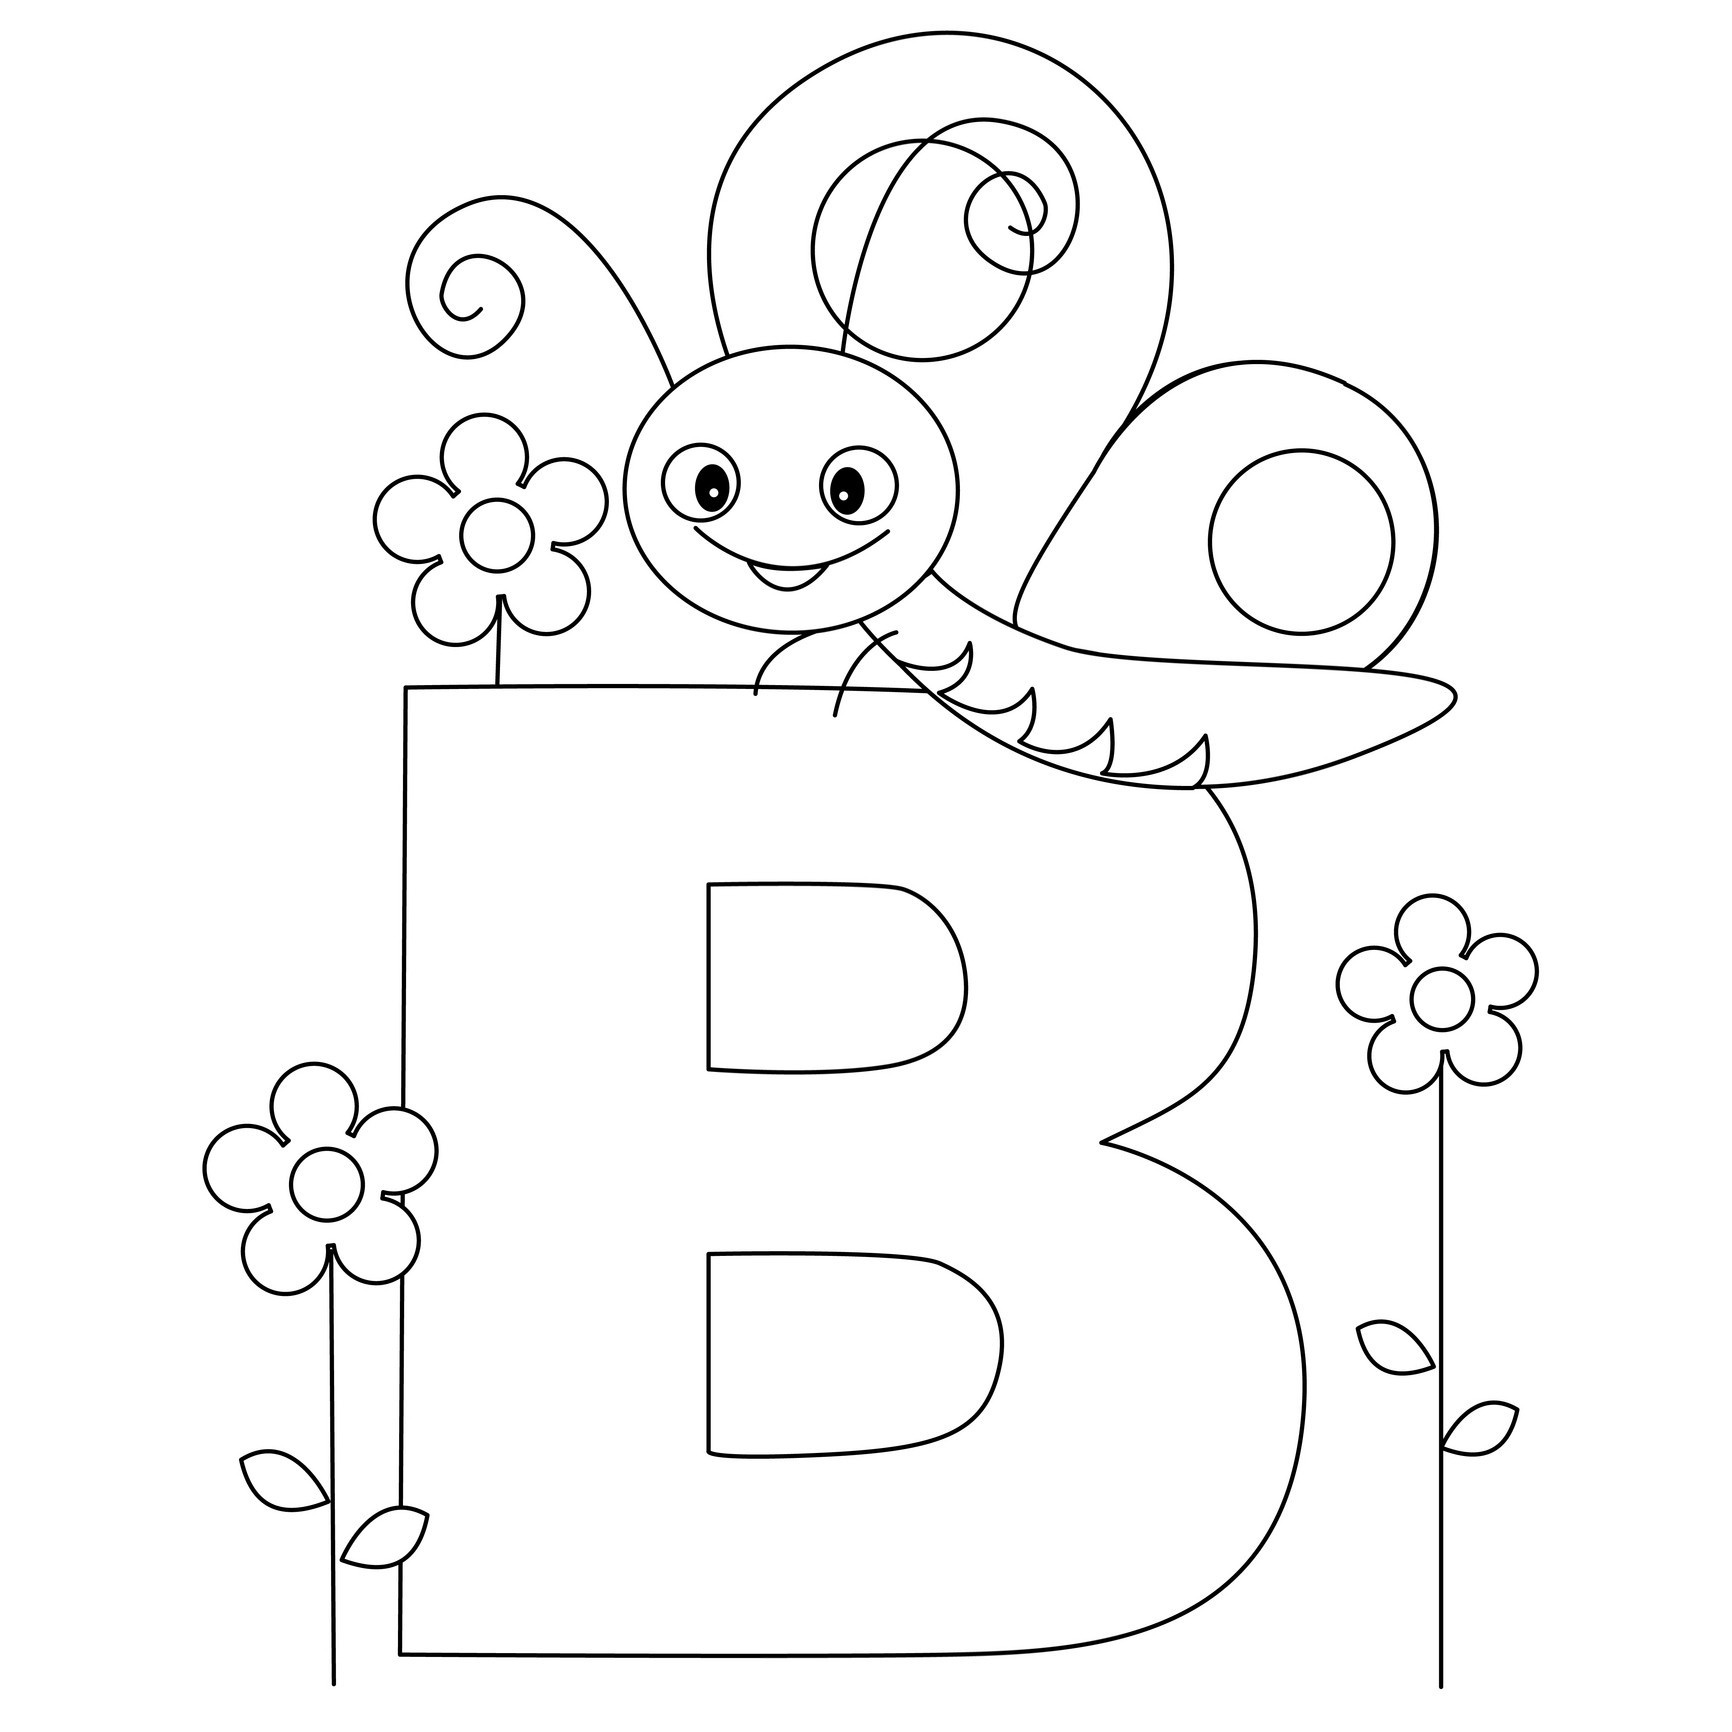 Alphabet Printable Coloring Pages   Presidencycollegekolkata - Free Printable Preschool Alphabet Coloring Pages